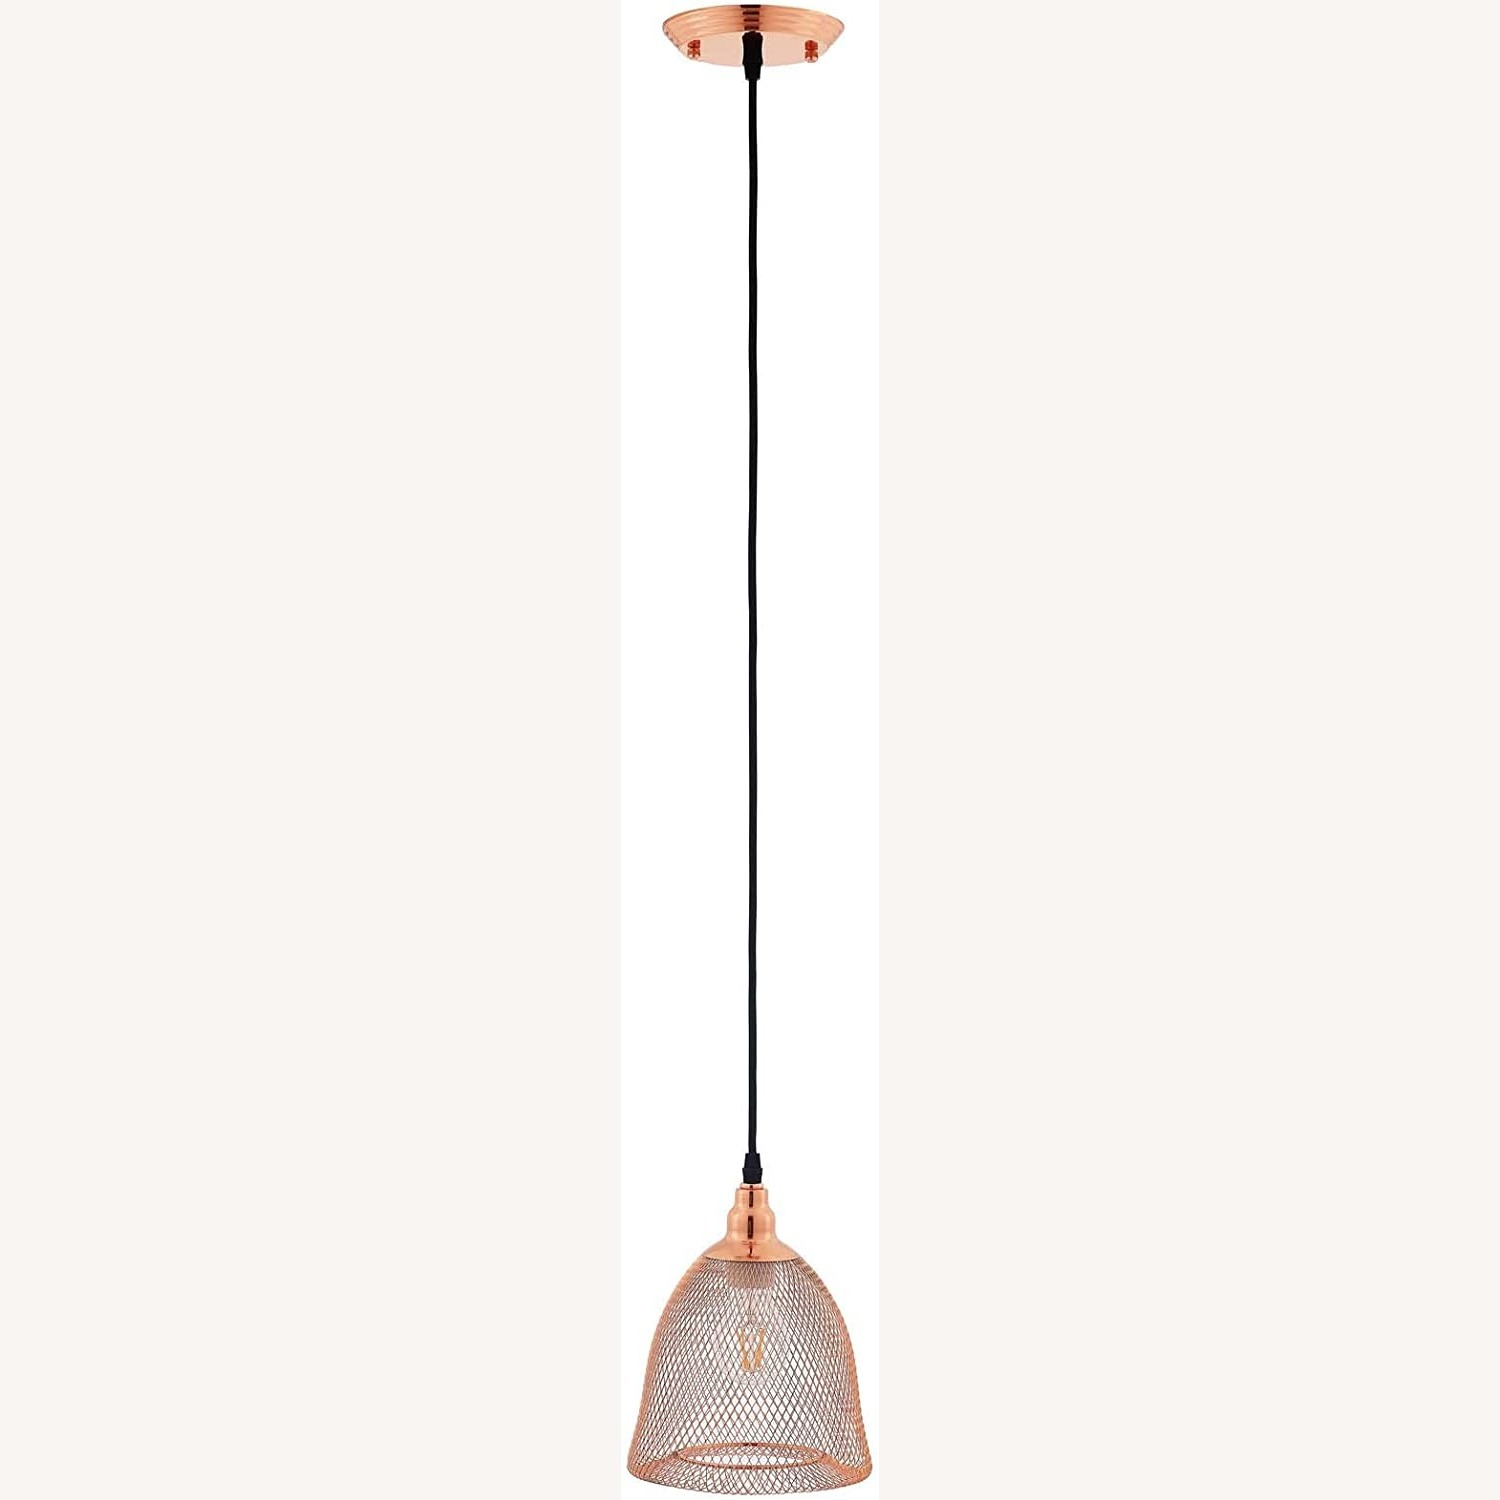 Pendant Light In Bell-Shaped Rose Gold Finish - image-0